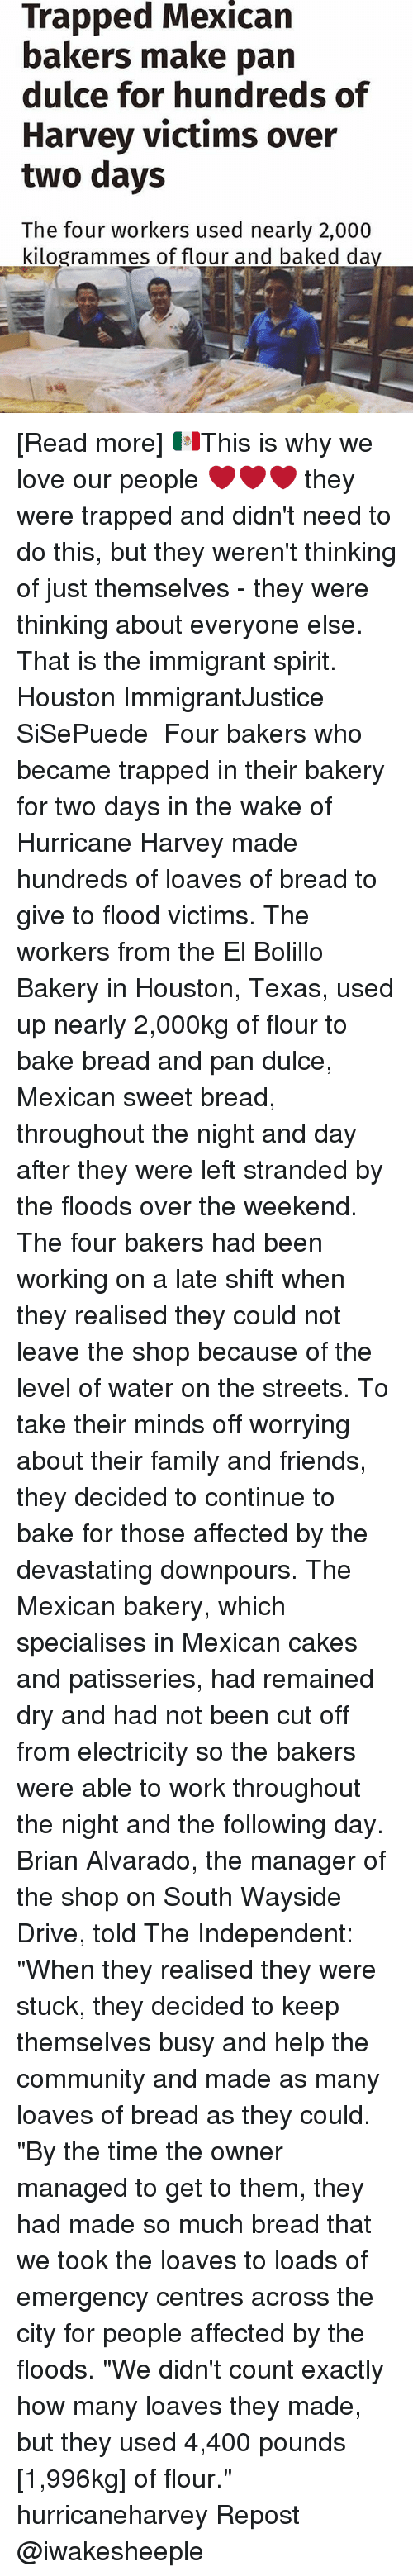 "the weekenders: Trapped Mexican  bakers make pan  dulce for hundreds of  Harvey victims over  two days  The four workers used nearly 2,000  kilogrammes of flour and baked da [Read more] 🇲🇽This is why we love our people ❤❤❤ they were trapped and didn't need to do this, but they weren't thinking of just themselves - they were thinking about everyone else. That is the immigrant spirit. Houston ImmigrantJustice SiSePuede ・・・ Four bakers who became trapped in their bakery for two days in the wake of Hurricane Harvey made hundreds of loaves of bread to give to flood victims. The workers from the El Bolillo Bakery in Houston, Texas, used up nearly 2,000kg of flour to bake bread and pan dulce, Mexican sweet bread, throughout the night and day after they were left stranded by the floods over the weekend. The four bakers had been working on a late shift when they realised they could not leave the shop because of the level of water on the streets. To take their minds off worrying about their family and friends, they decided to continue to bake for those affected by the devastating downpours. The Mexican bakery, which specialises in Mexican cakes and patisseries, had remained dry and had not been cut off from electricity so the bakers were able to work throughout the night and the following day. Brian Alvarado, the manager of the shop on South Wayside Drive, told The Independent: ""When they realised they were stuck, they decided to keep themselves busy and help the community and made as many loaves of bread as they could. ""By the time the owner managed to get to them, they had made so much bread that we took the loaves to loads of emergency centres across the city for people affected by the floods. ""We didn't count exactly how many loaves they made, but they used 4,400 pounds [1,996kg] of flour."" hurricaneharvey Repost @iwakesheeple"